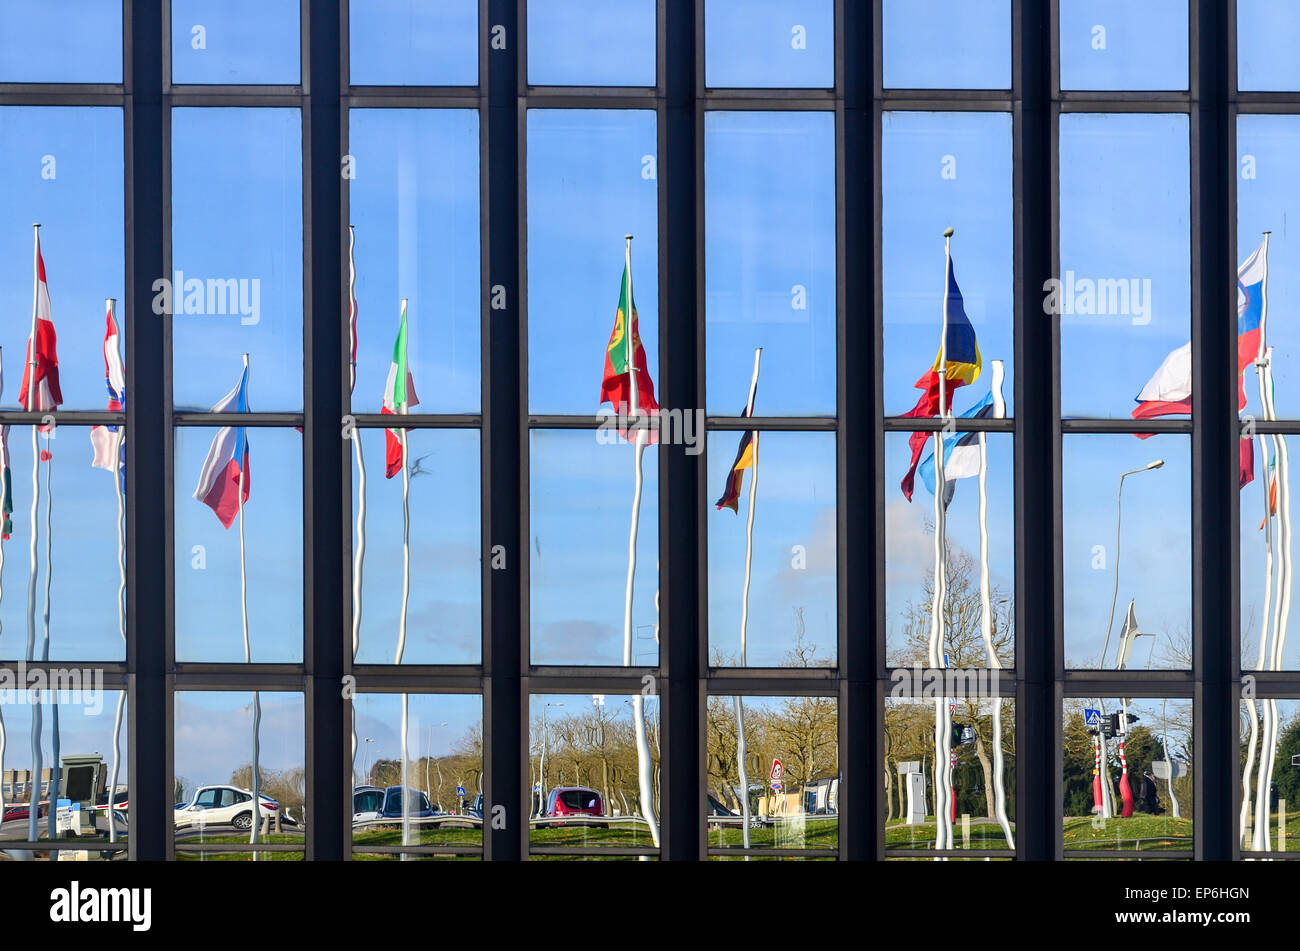 Flags of the European Union countries reflecting on the European Commission building, European Quarter, Luxembourg - Stock Image